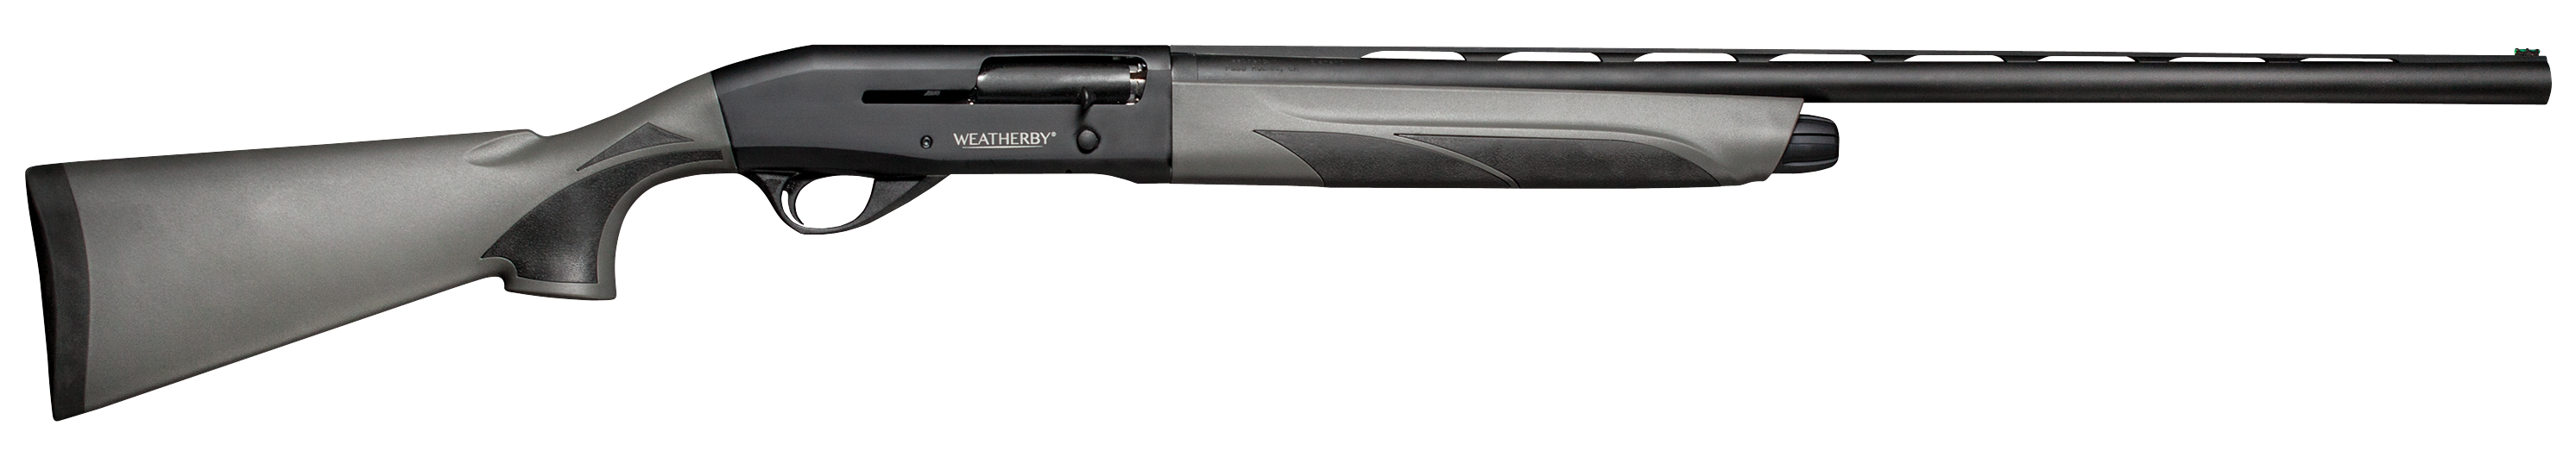 Weatherby Element Synthetic Semi-Auto Shotgun 3'' 12 Gauge 26'' Black - Synthetic - Gray